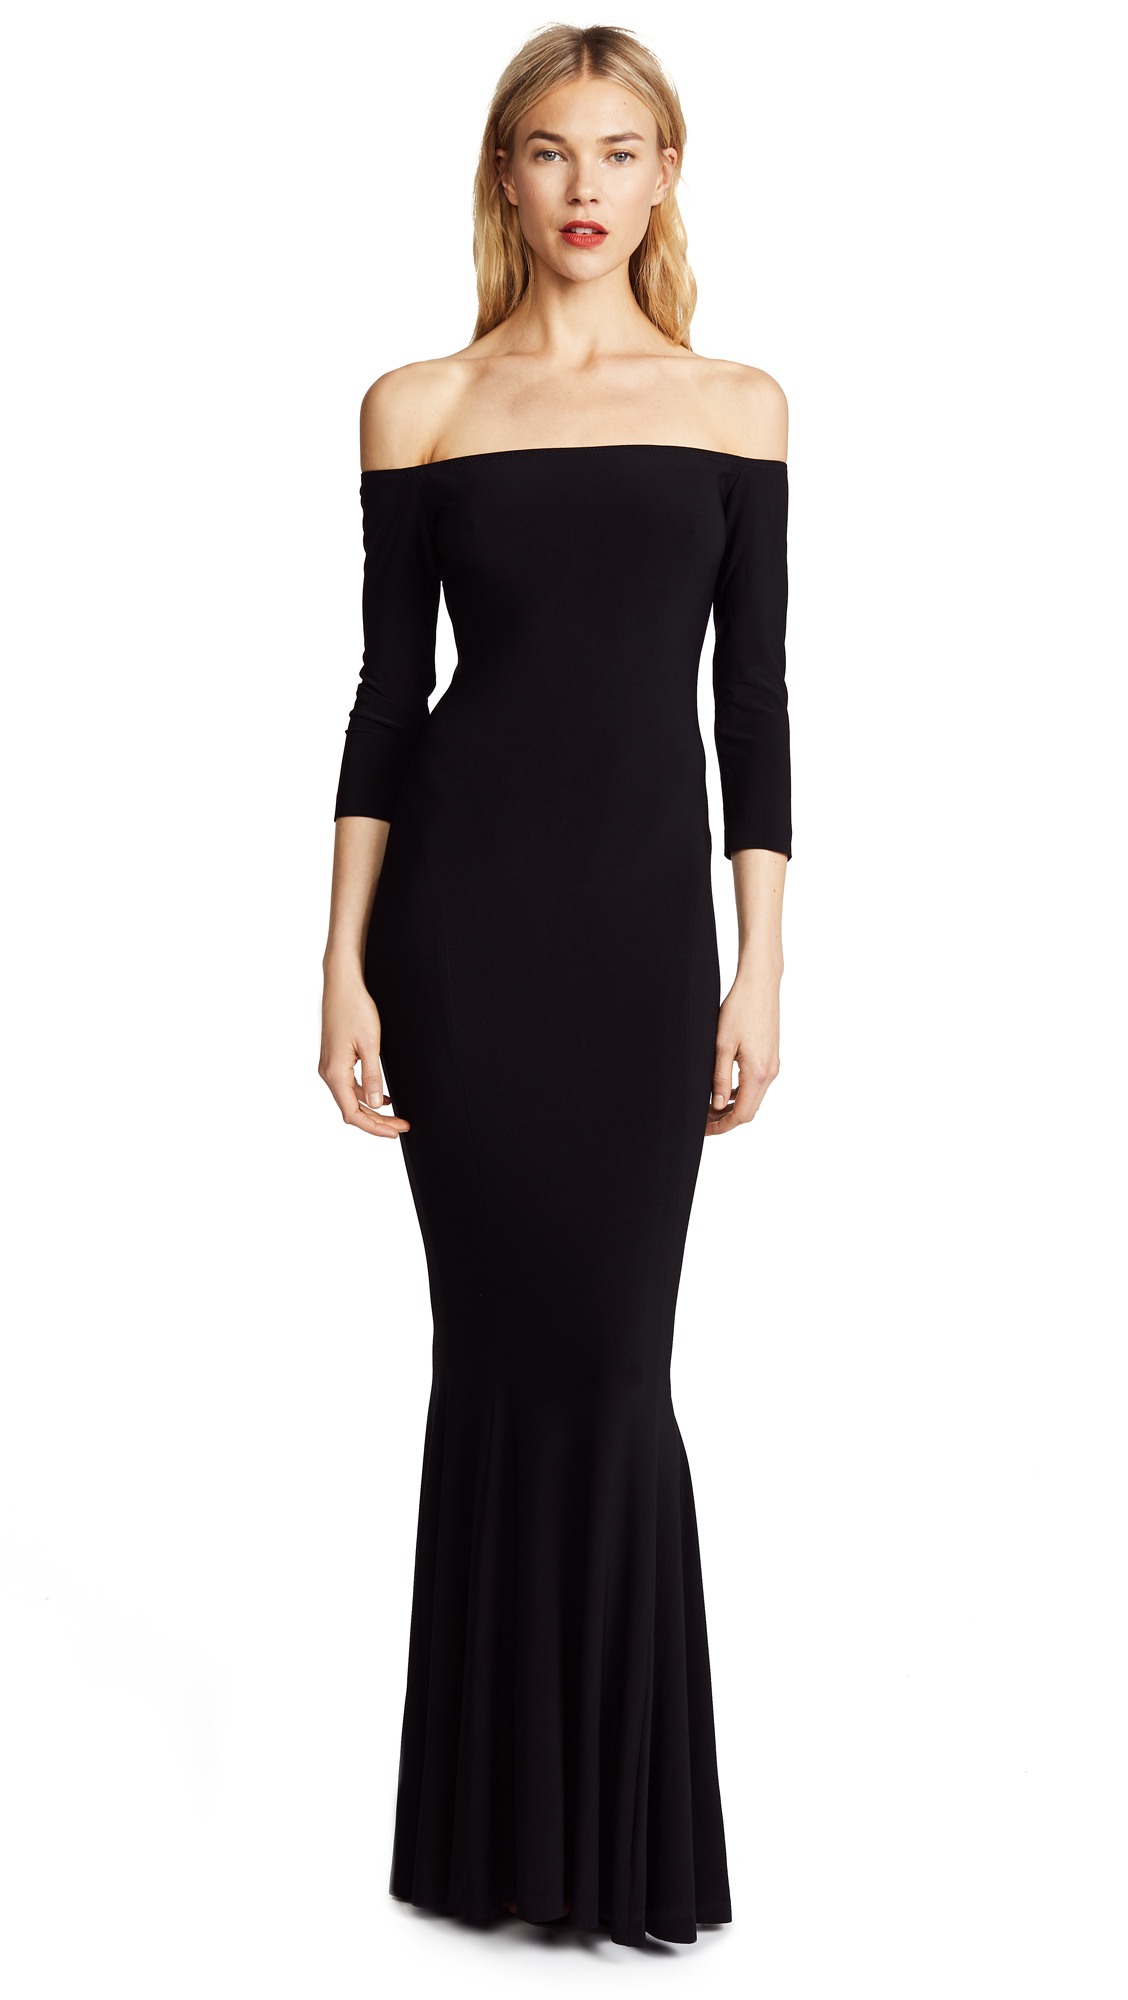 Norma Kamali Kamali Kulture Off Shoulder Fishtail Gown In Black